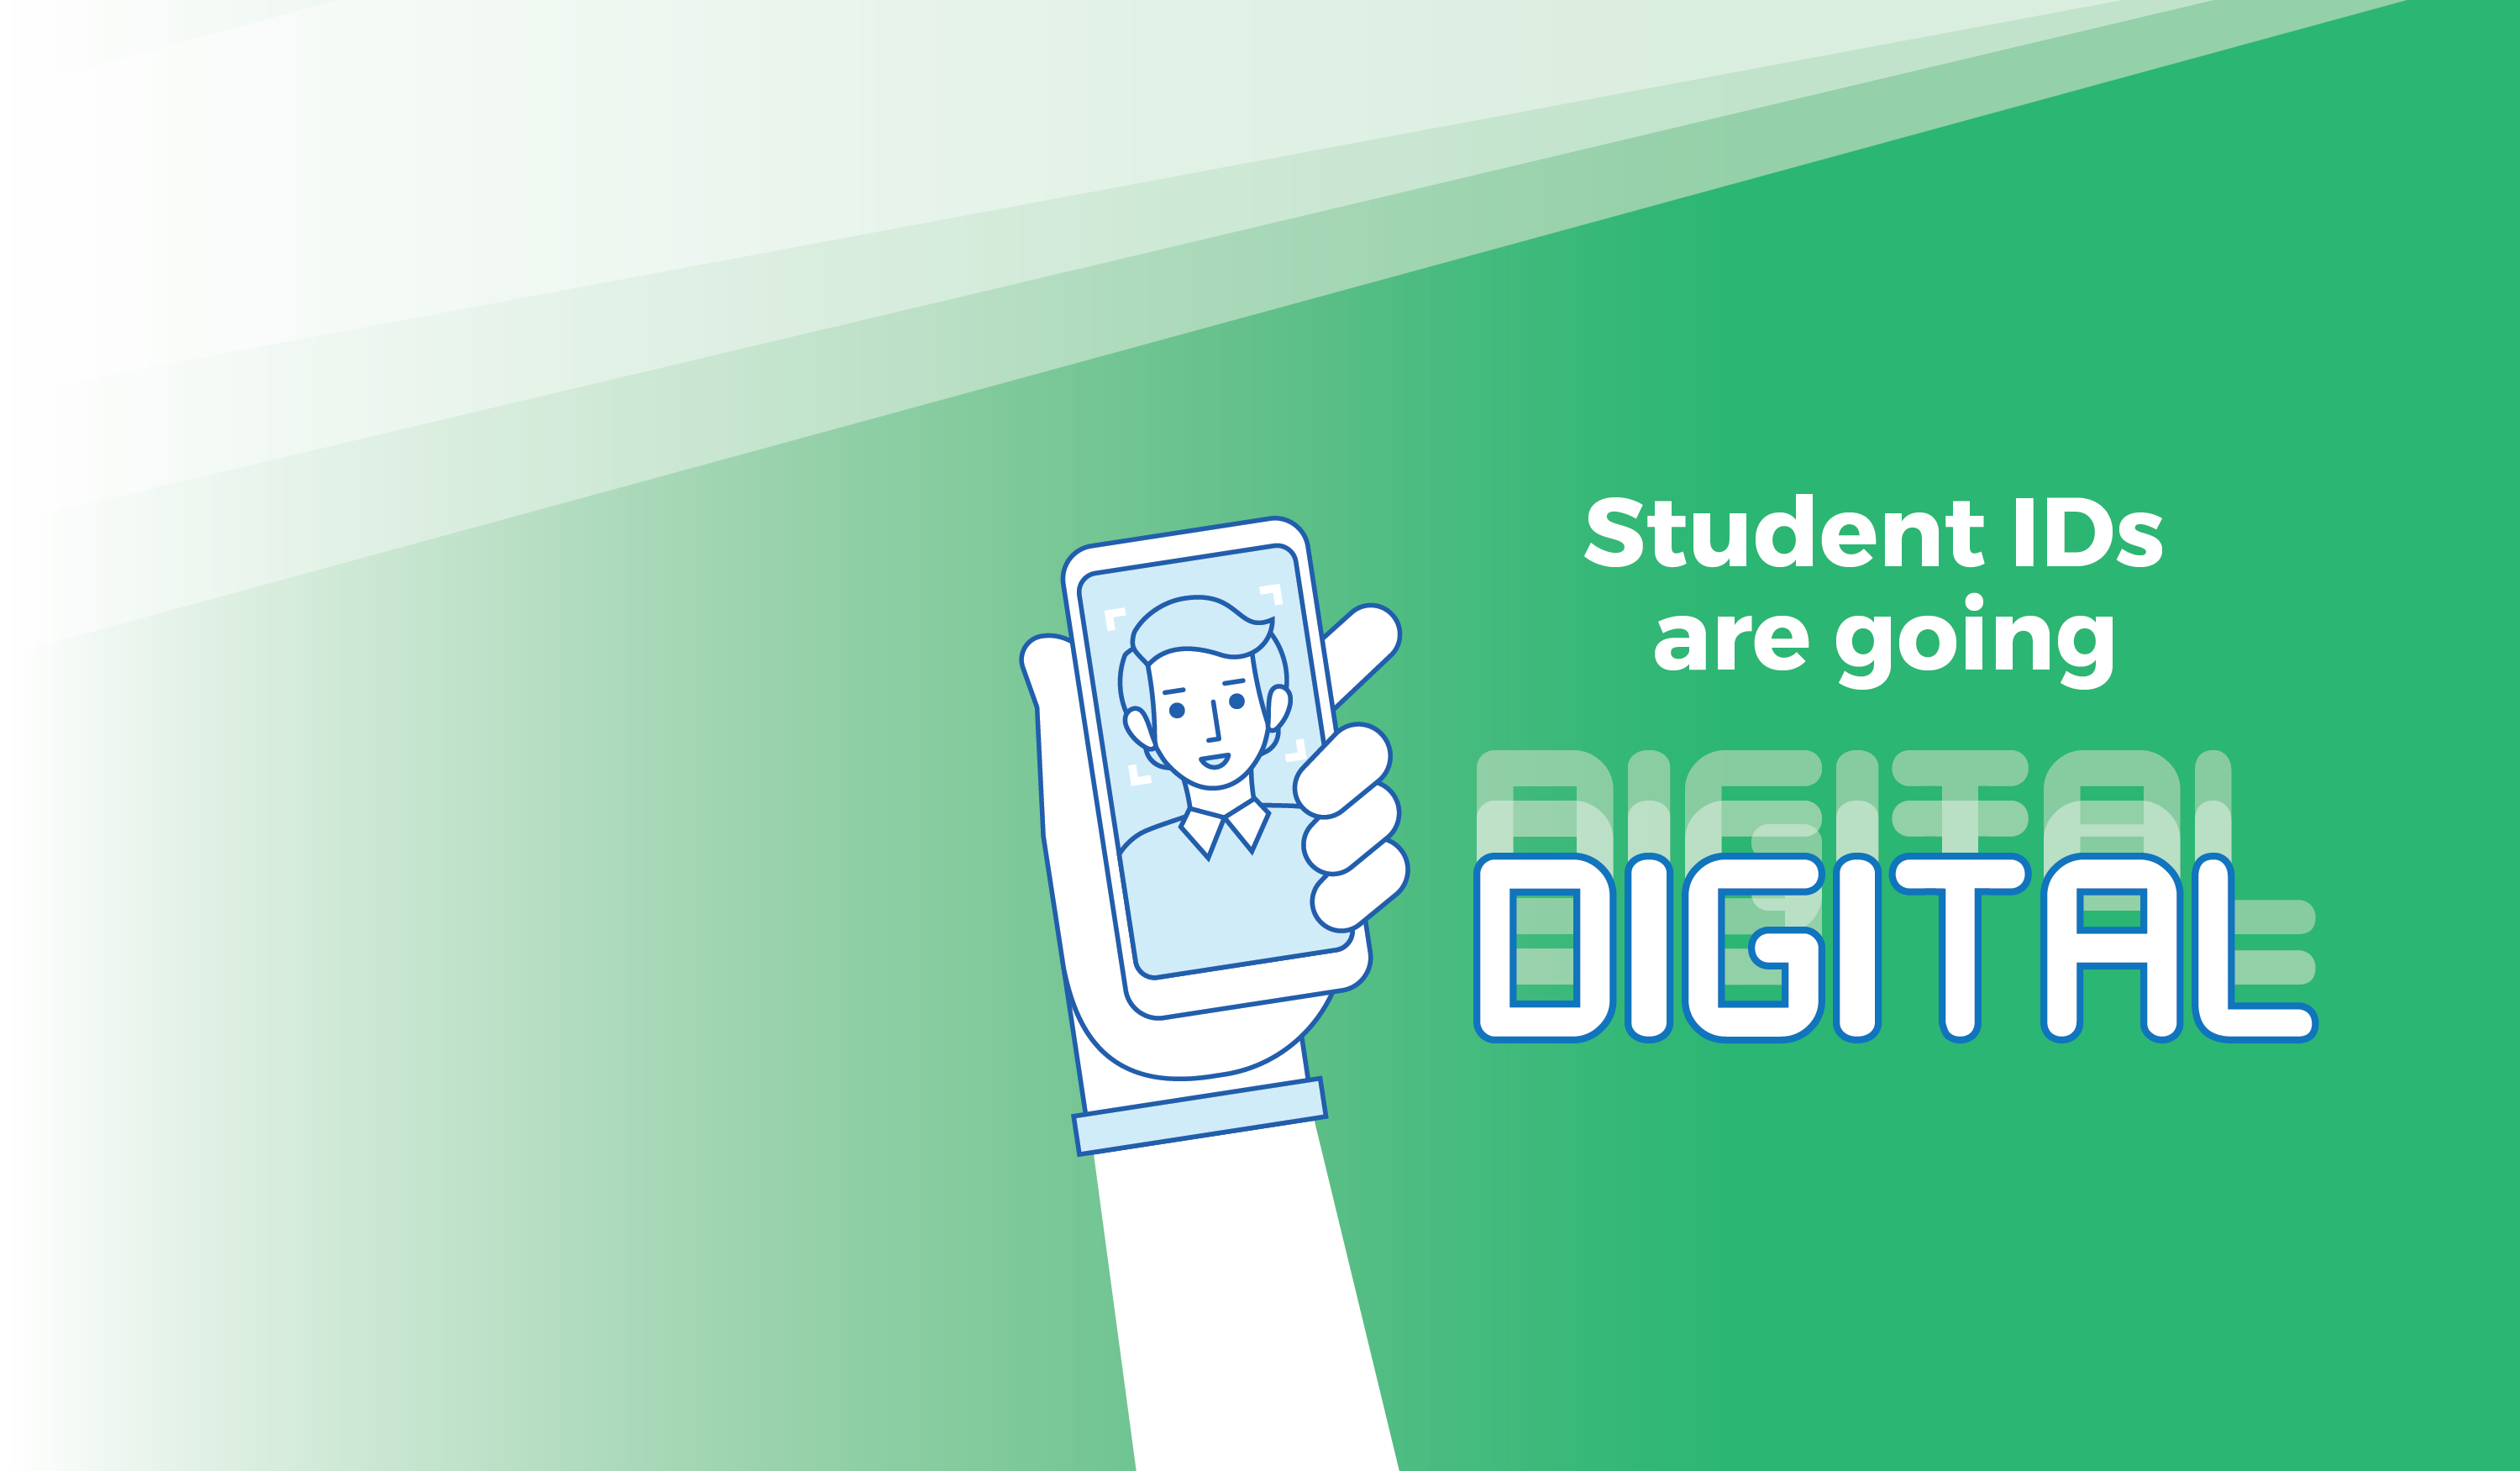 A graphic of a hand holding a smartphone with a portrait, with text that reads: Student IDs are going DIGITAL